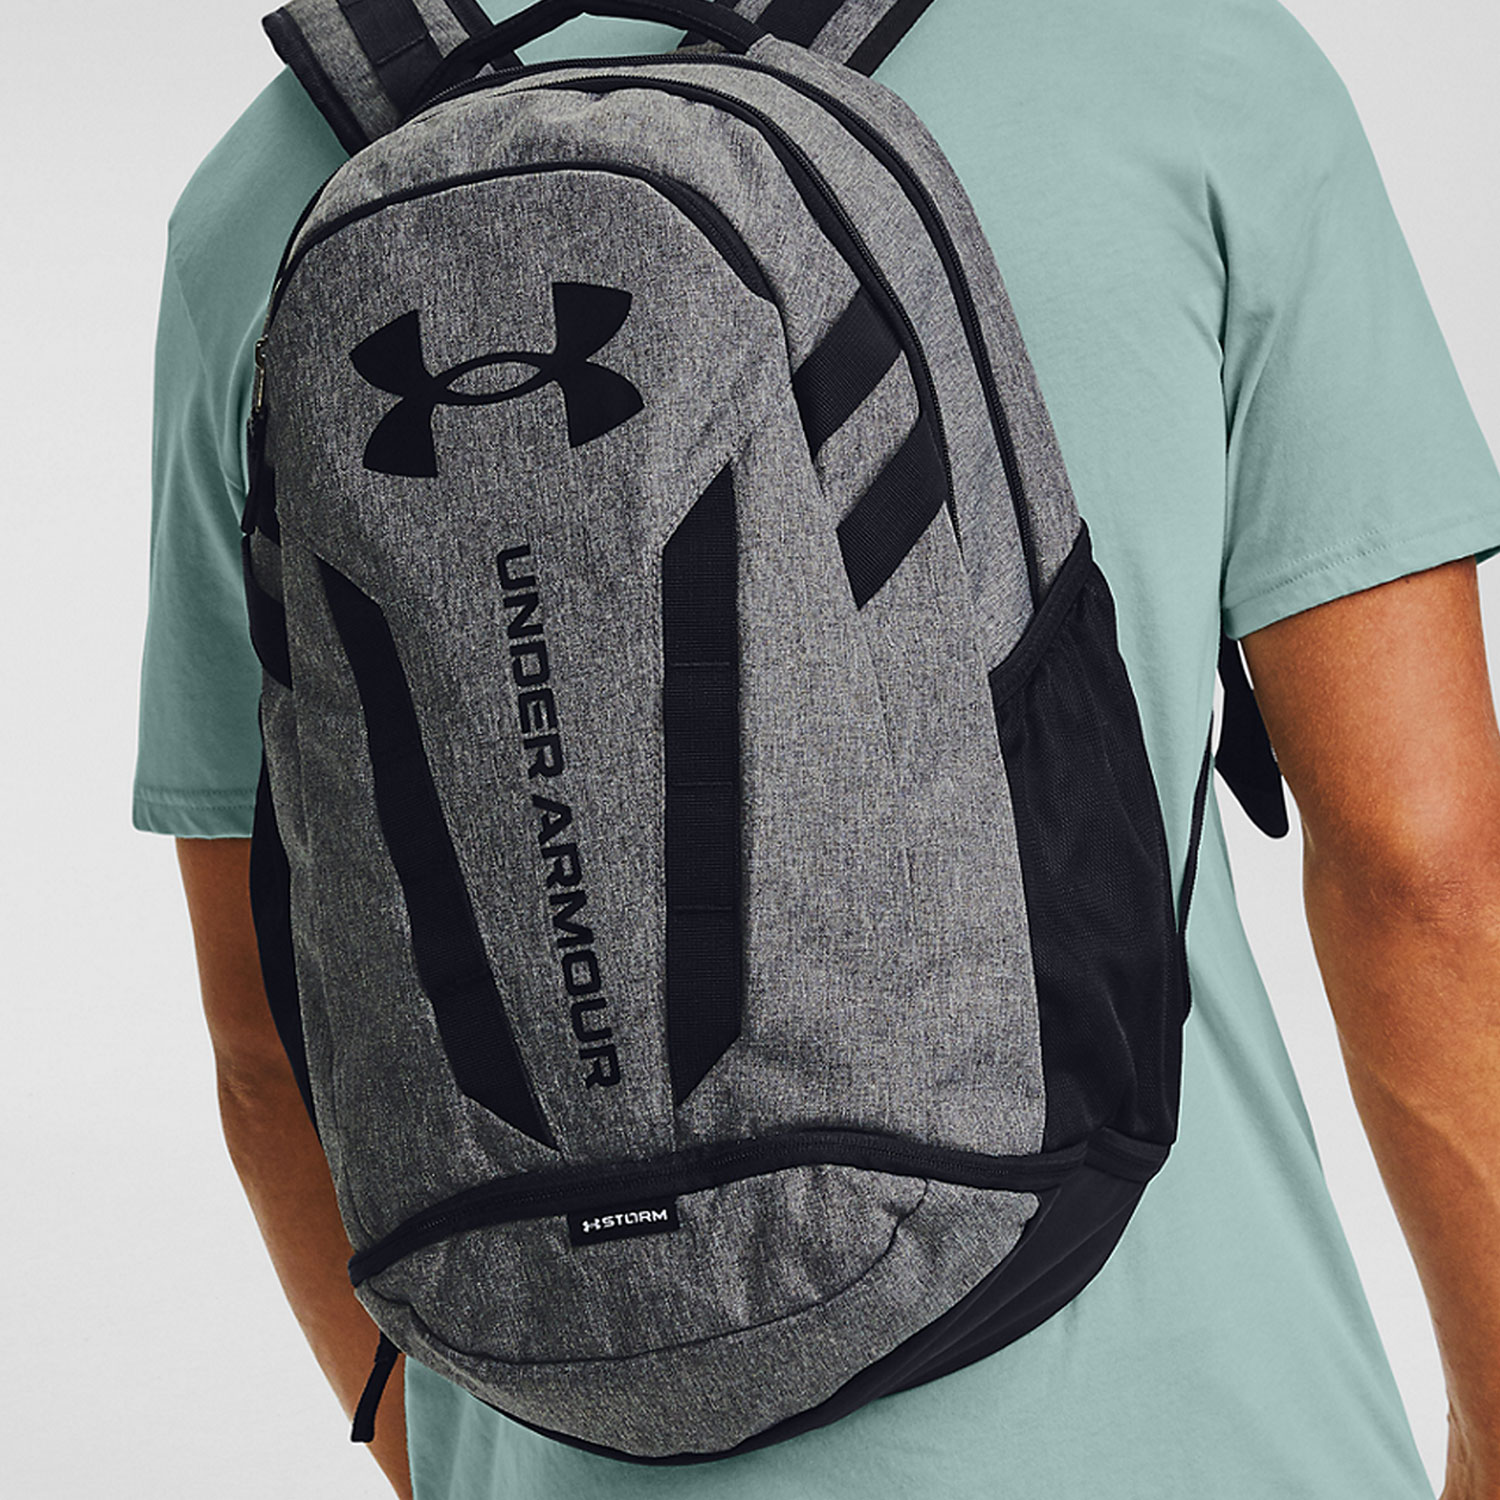 Under Armour Hustle 5.0 Mochila - Black/Graphite Medium Heather